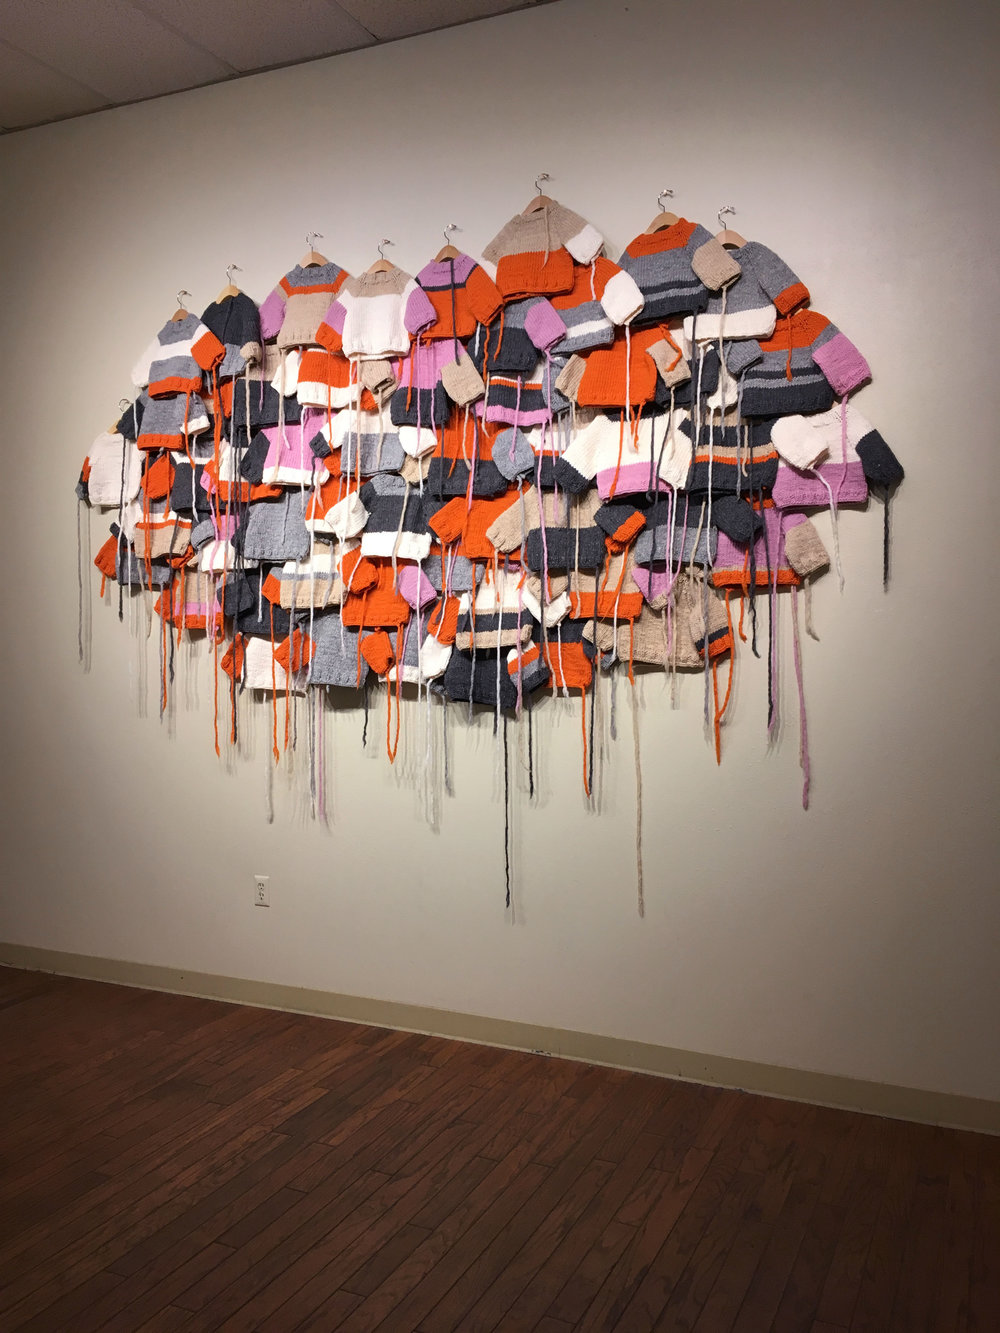 Kindred  captures a sense of mass, of horizontal overlay, of connection, of community. Via scale, color, and form it references lineage, influence, and relationships.   Kindred , 2018.  Wool, wood.  Apprx. 5 ft. x 8 ft. (dimensions variable).